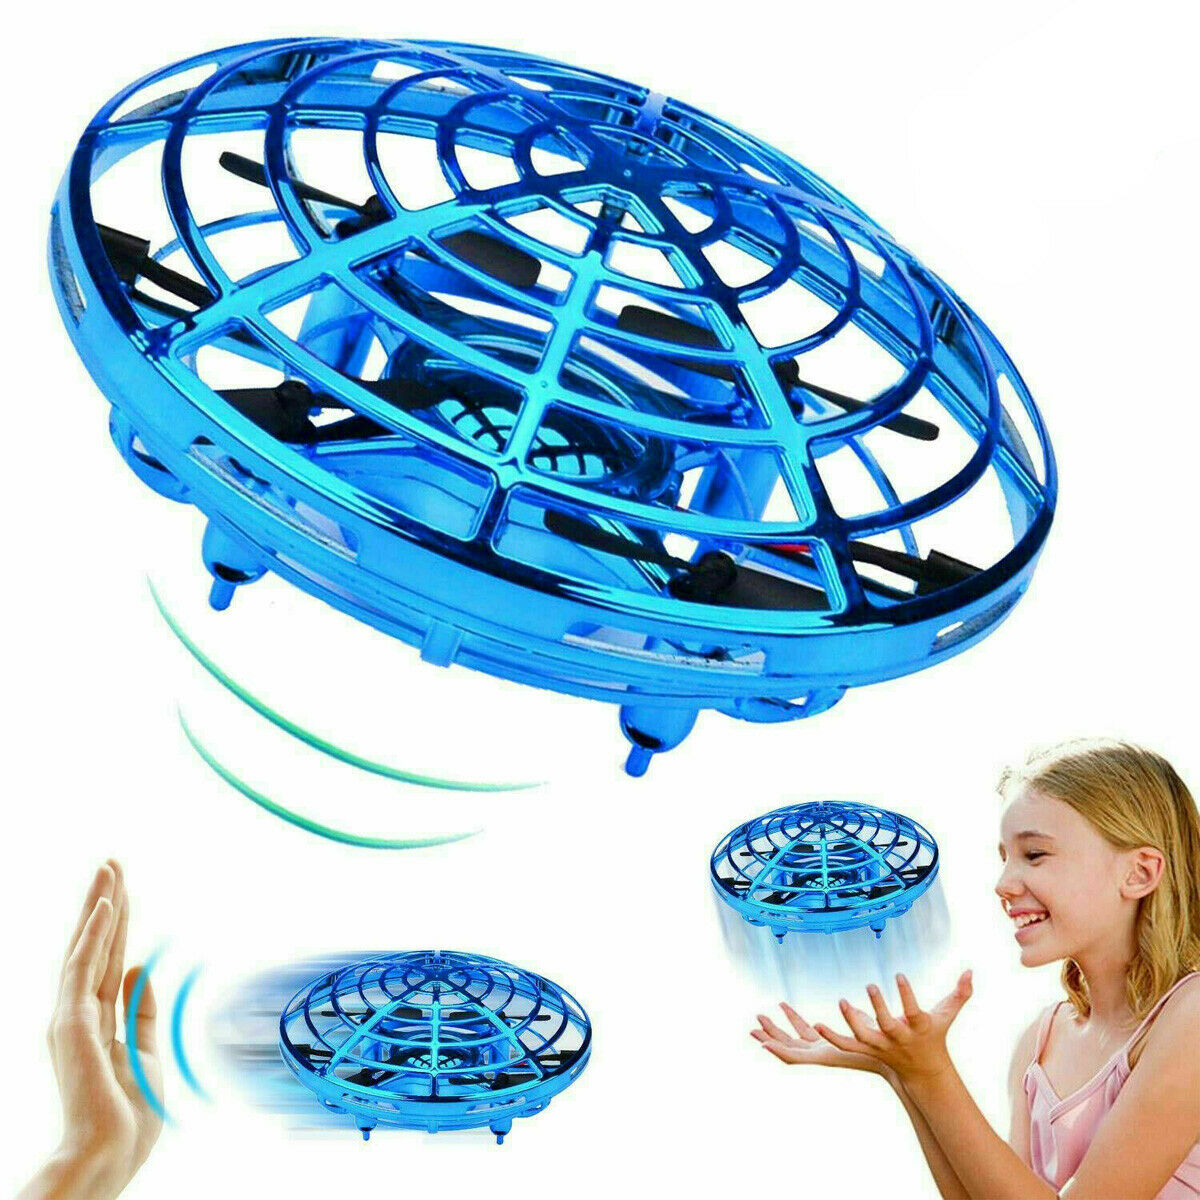 Mini Drone Motion Sensor RC Induction Flying Ball Quadcopter